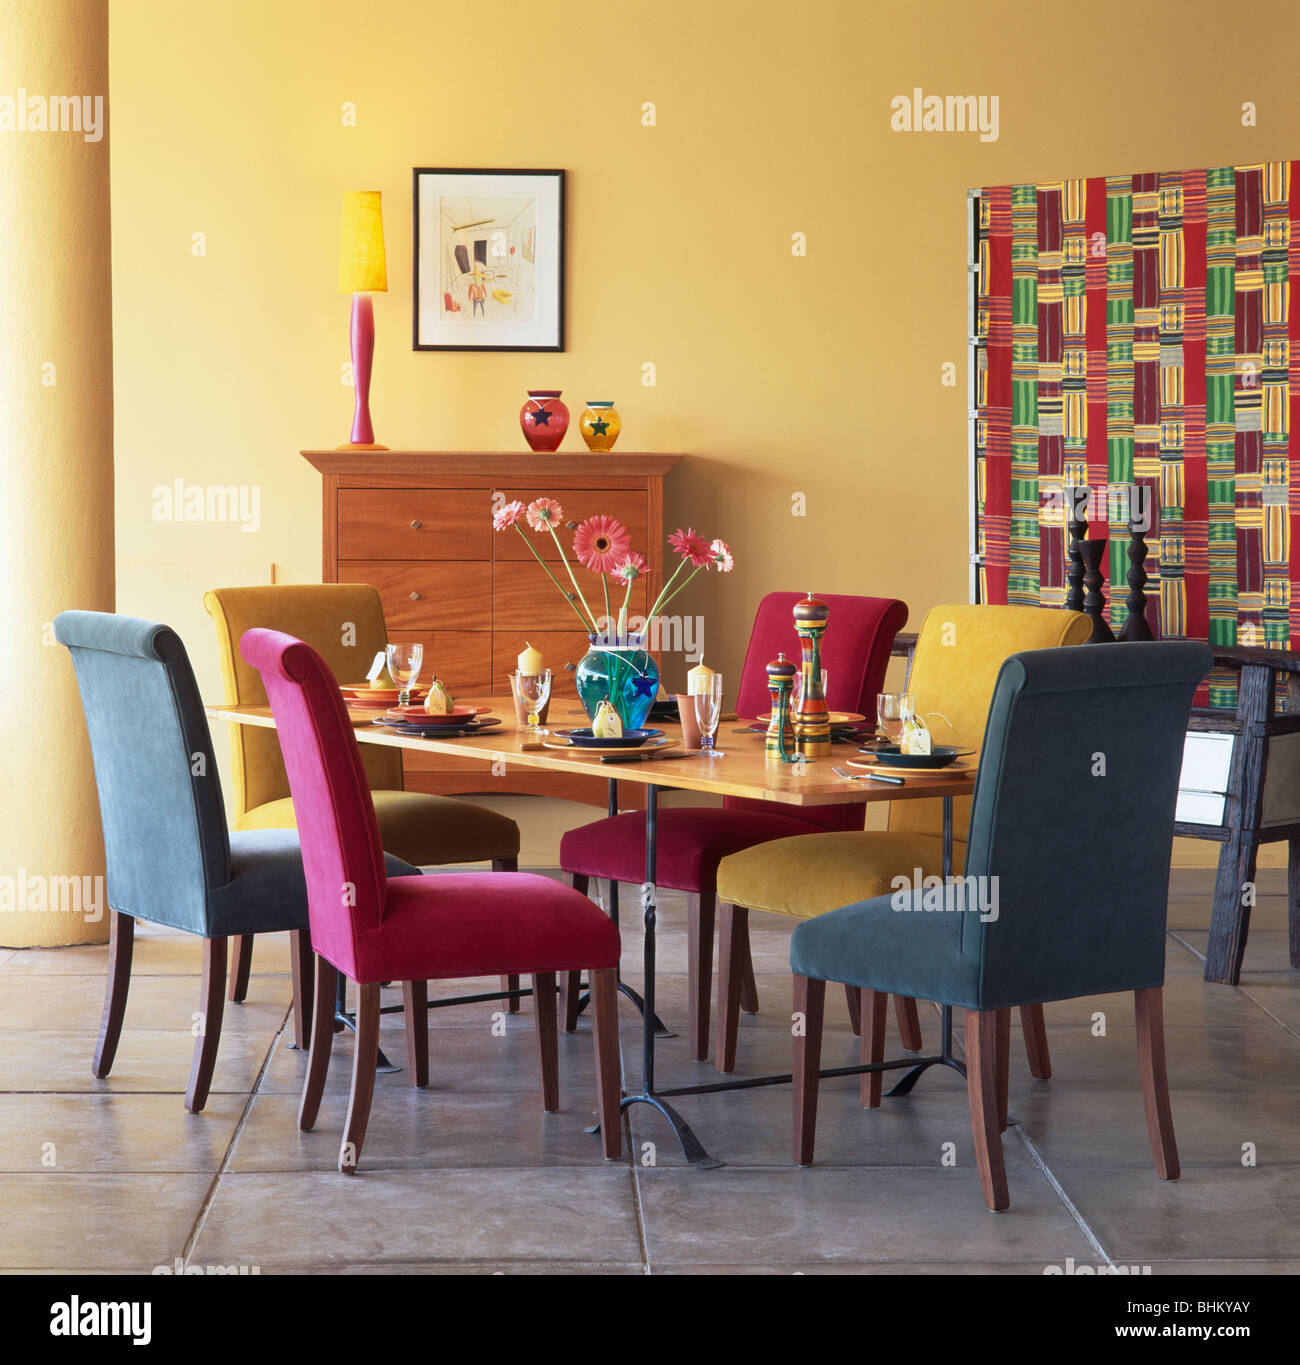 Pink, Turquoise And Blue Velour Upholstered Dining Chairs At Table In  Modern Yellow Dining Room With Multi Colored Screen